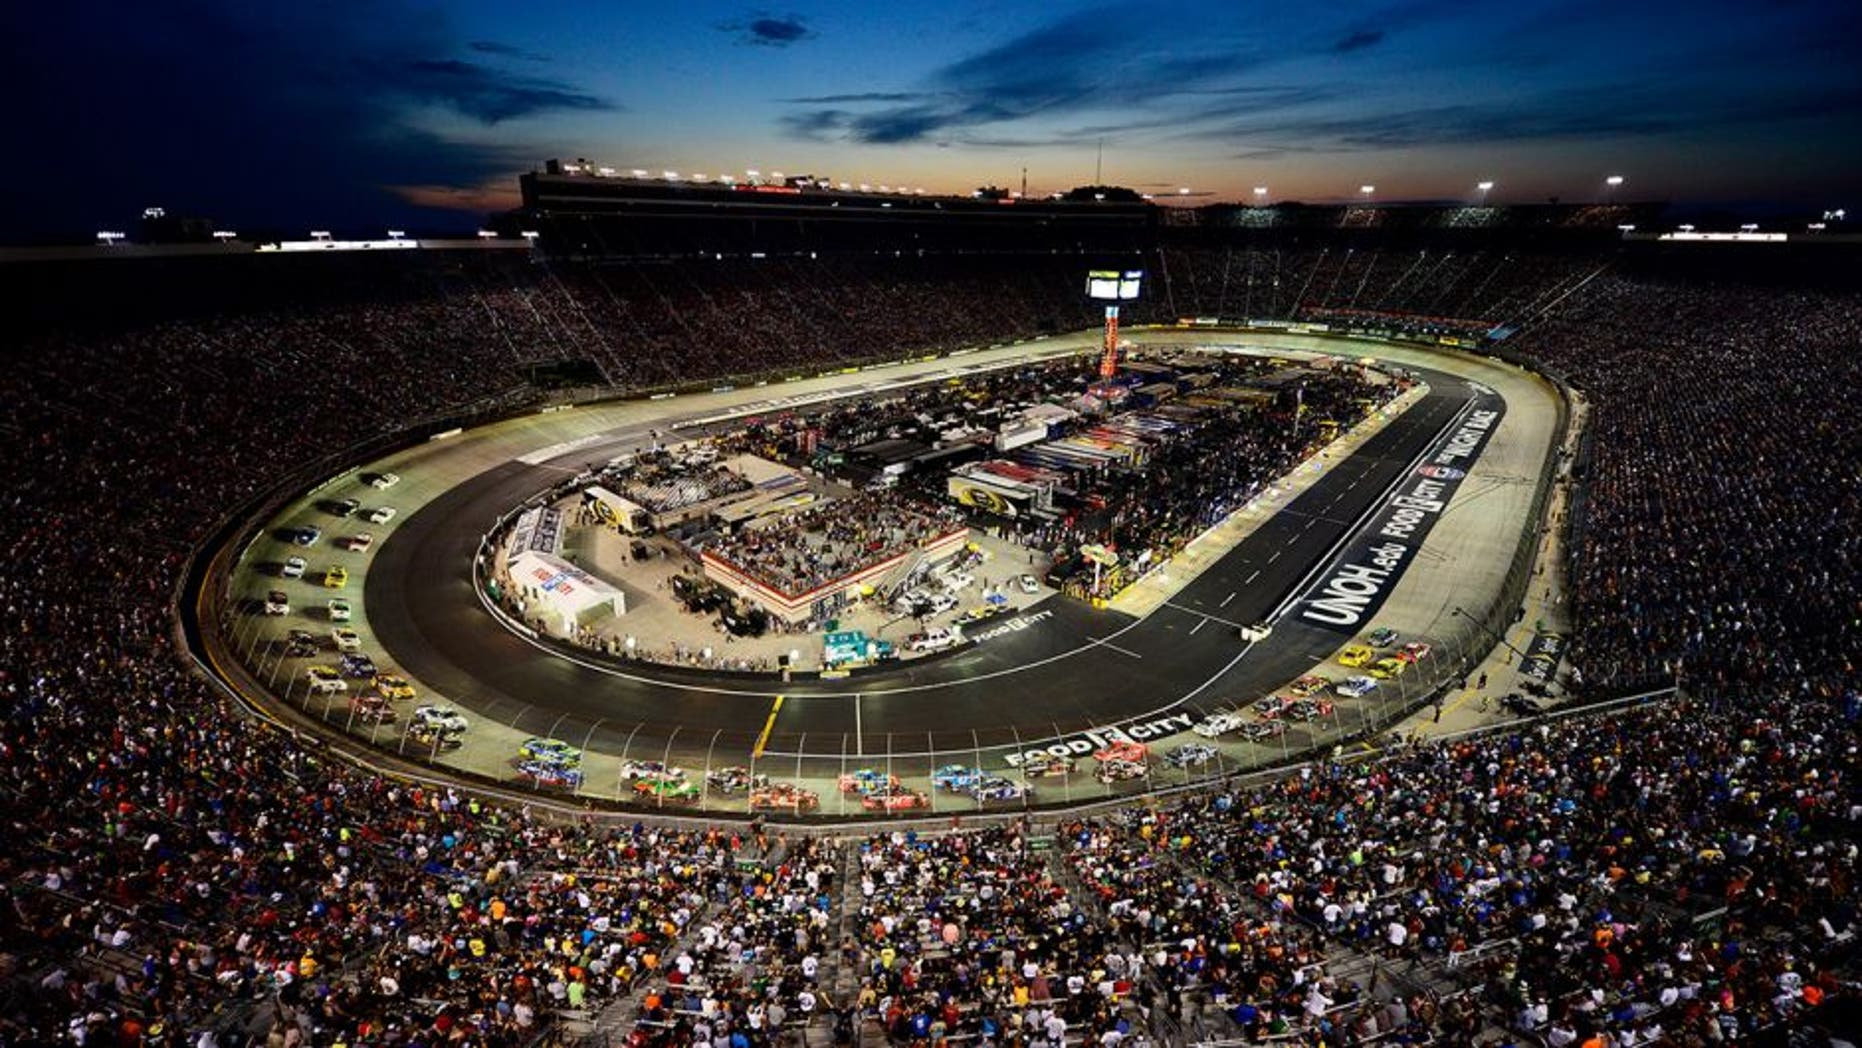 BRISTOL, TN - AUGUST 22: A general view of the speedway as cars race during the NASCAR Sprint Cup Series IRWIN Tools Night Race at Bristol Motor Speedway on August 22, 2015 in Bristol, Tennessee. (Photo by Jeff Curry/NASCAR via Getty Images)